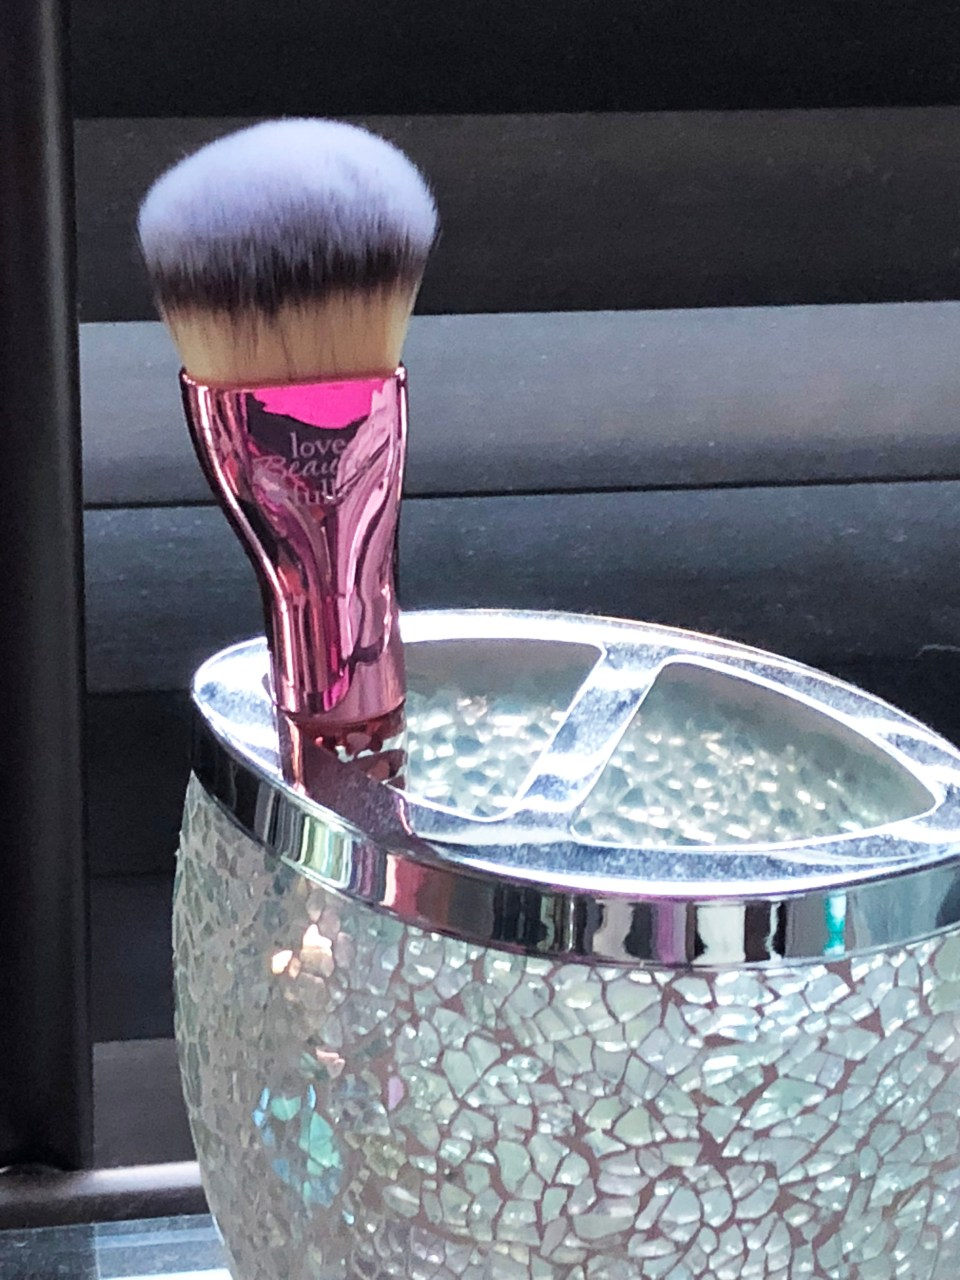 IT Cosmetics - Love is the foundation brush 2